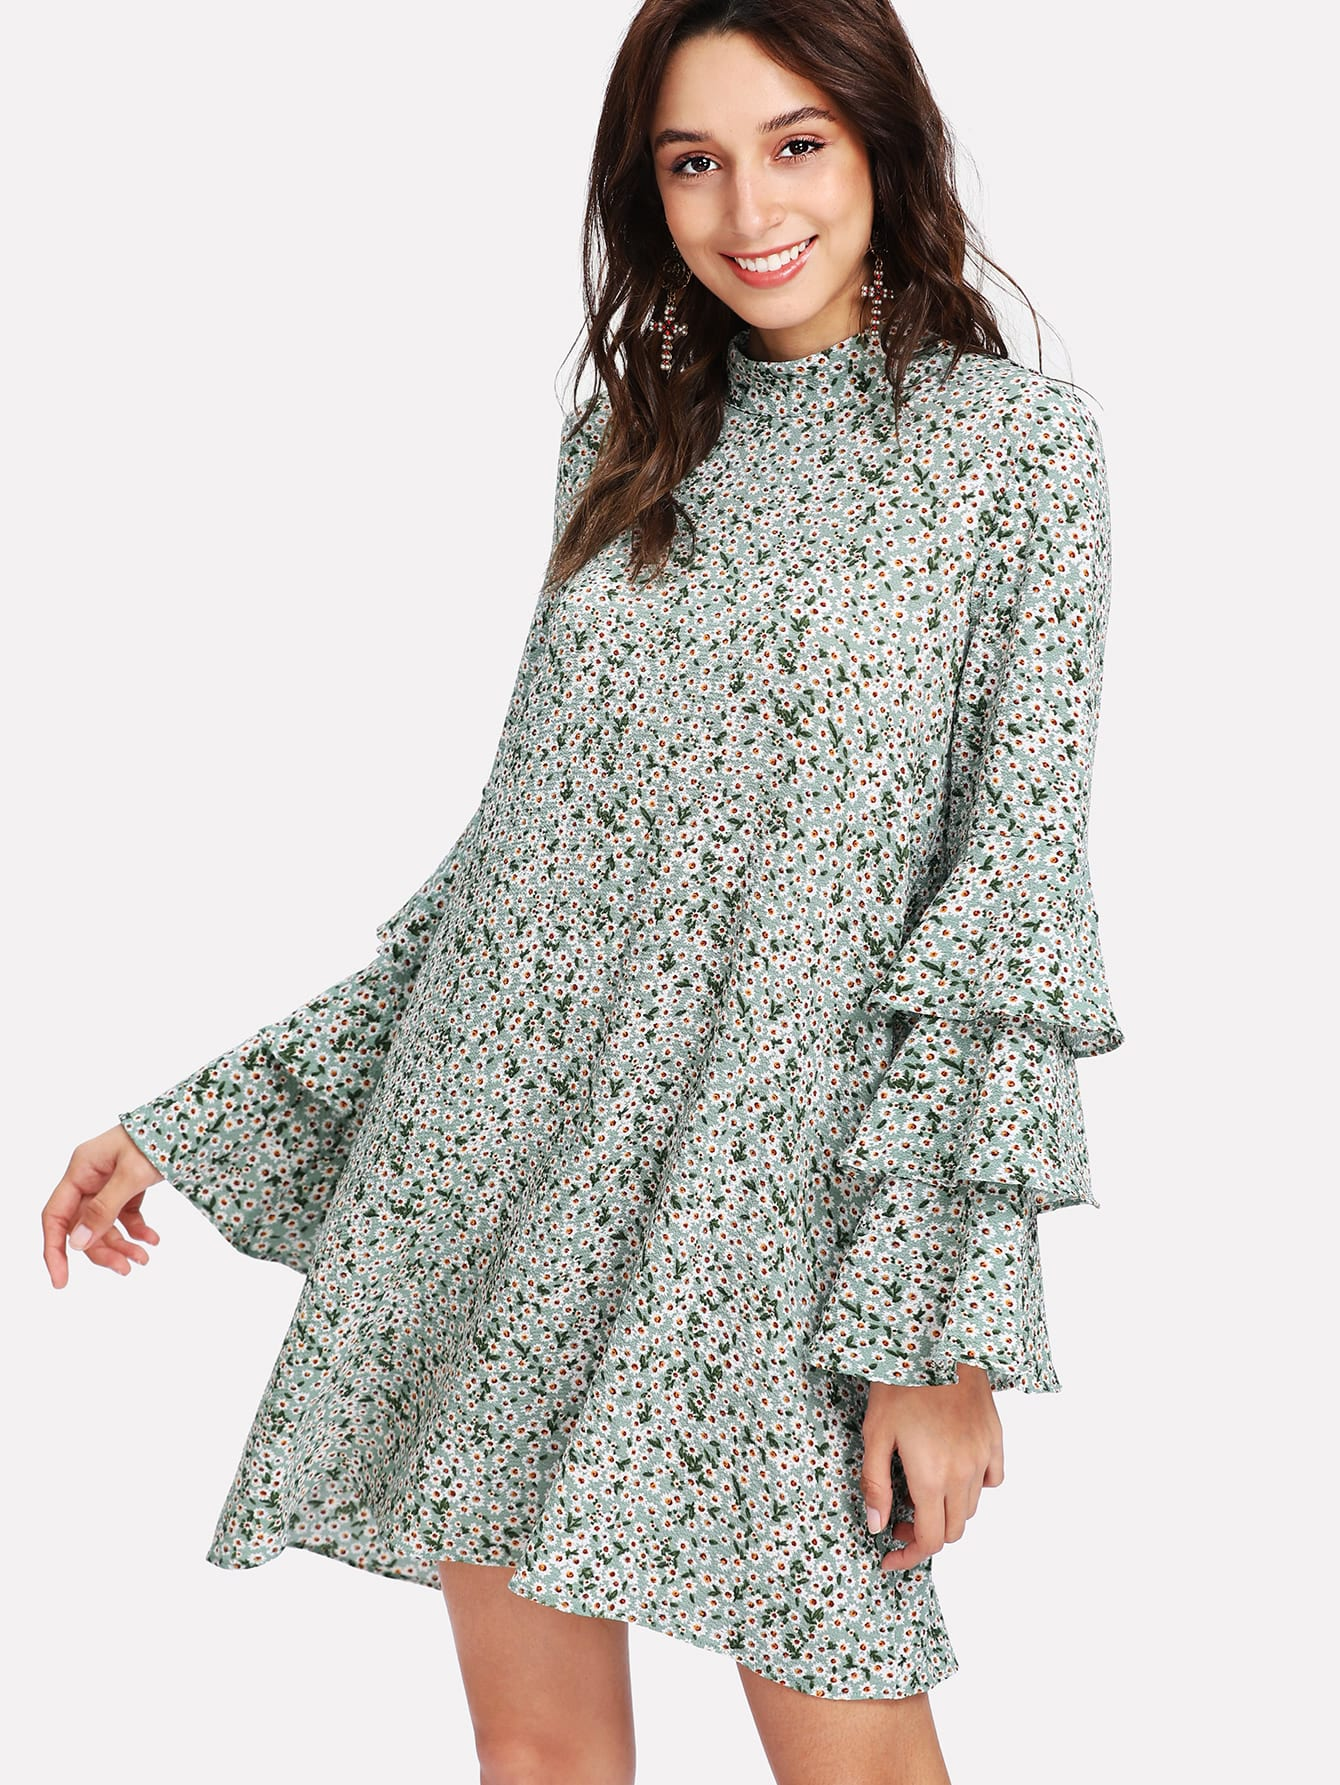 Layered Sleeve Daisy Print Dress pearl detail layered frill sleeve top